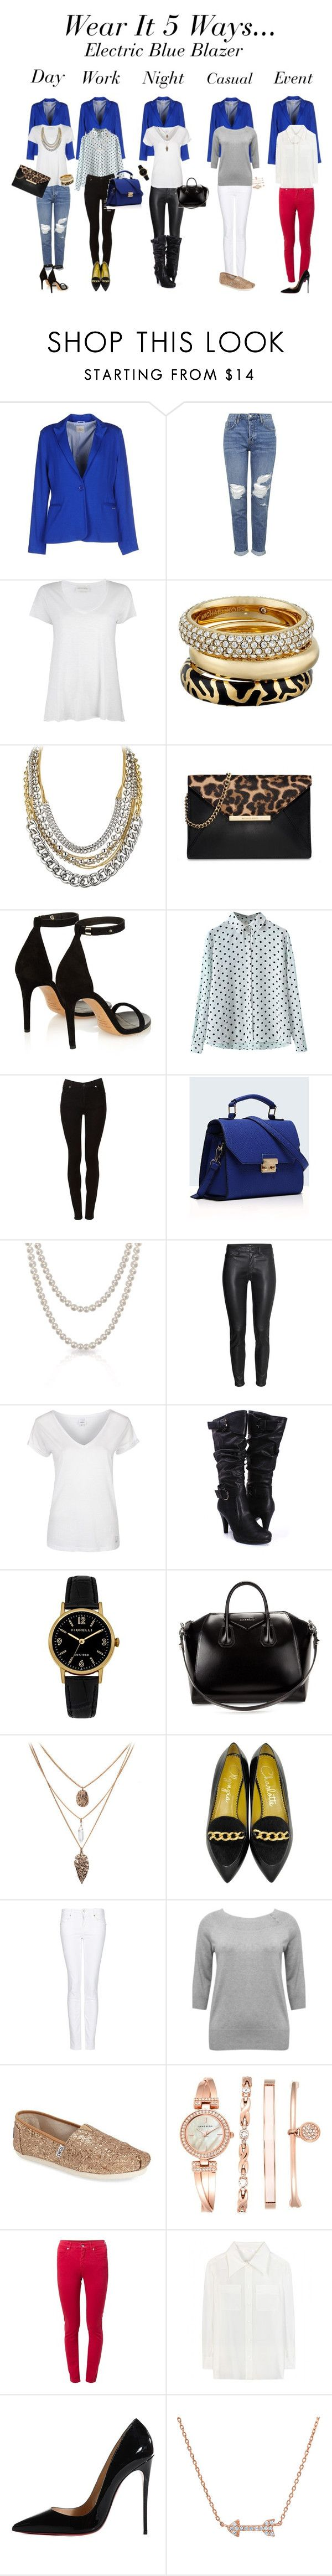 """Electric Blue Blazer...Wear It 5 Ways"" by misschandelier ❤ liked on Polyvore featuring Maison Espin, Topshop, American Vintage, Michael Kors, Dyrberg/Kern, MICHAEL Michael Kors, Isabel Marant, Cheap Monday, Relaxfeel and Bling Jewelry"